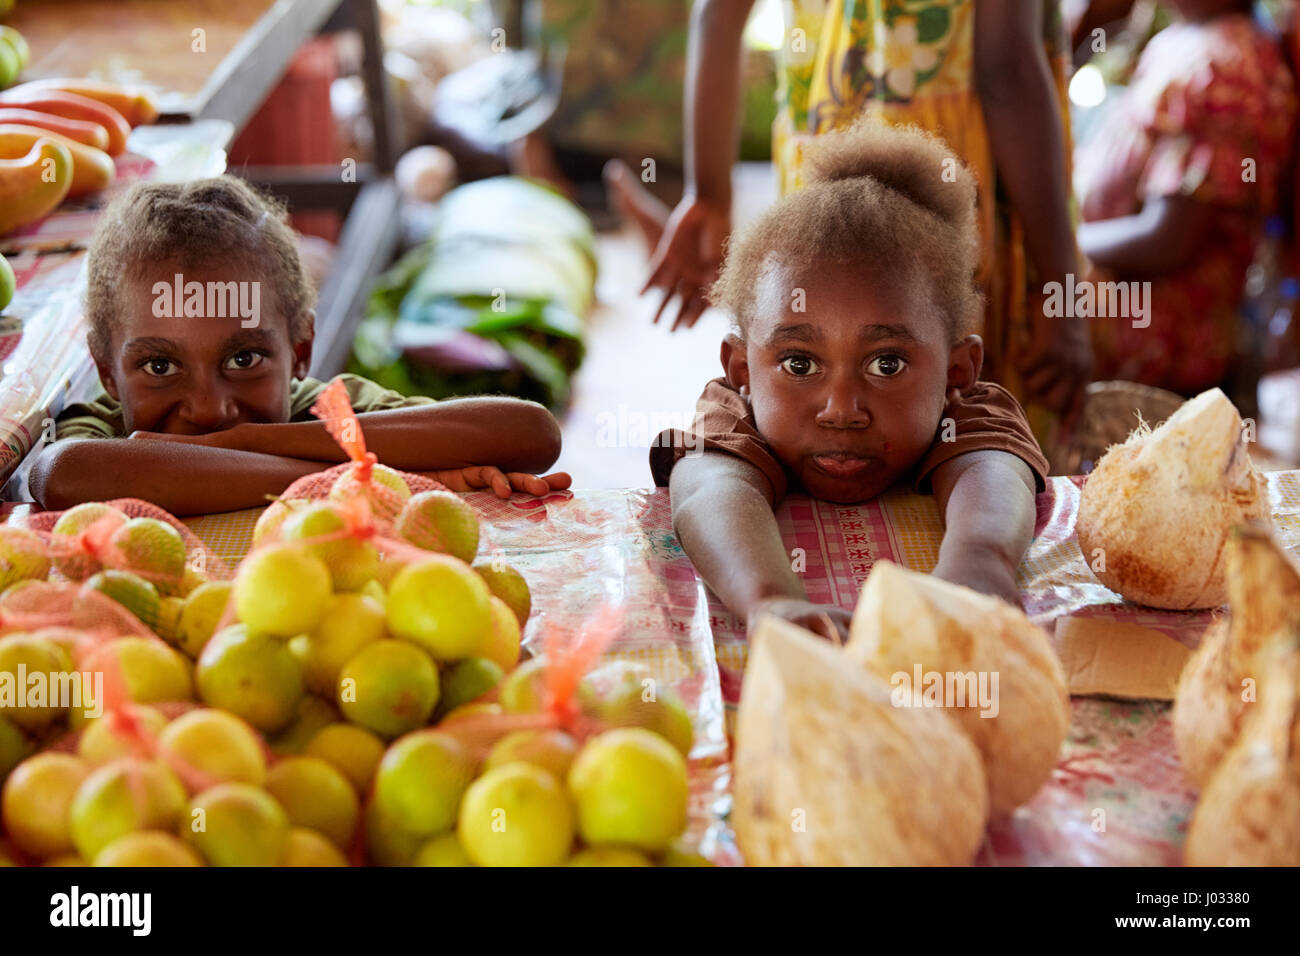 Children at the Main market in Port Vila, Efate Island, Vanuatu - Stock Image